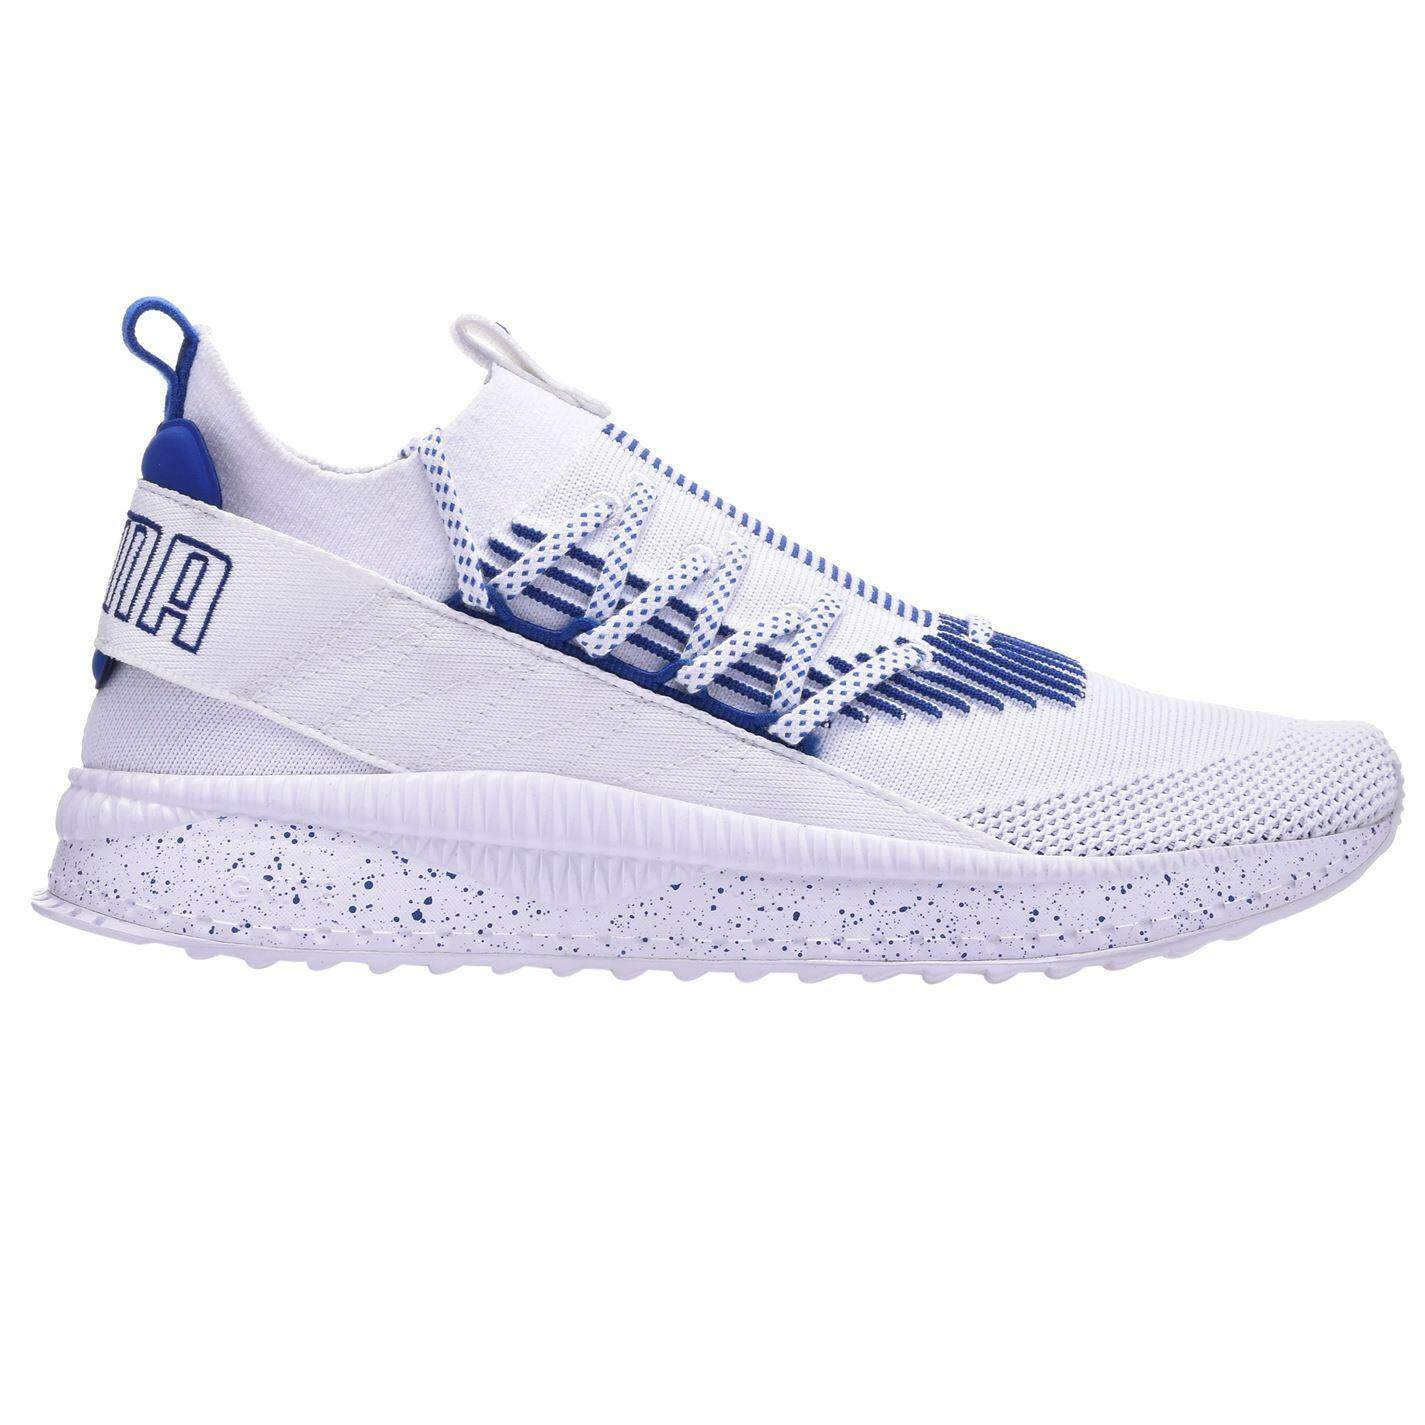 062fe1bde0 Puma Men s Sports Shoes - Running Shoes price in Malaysia - Best ...